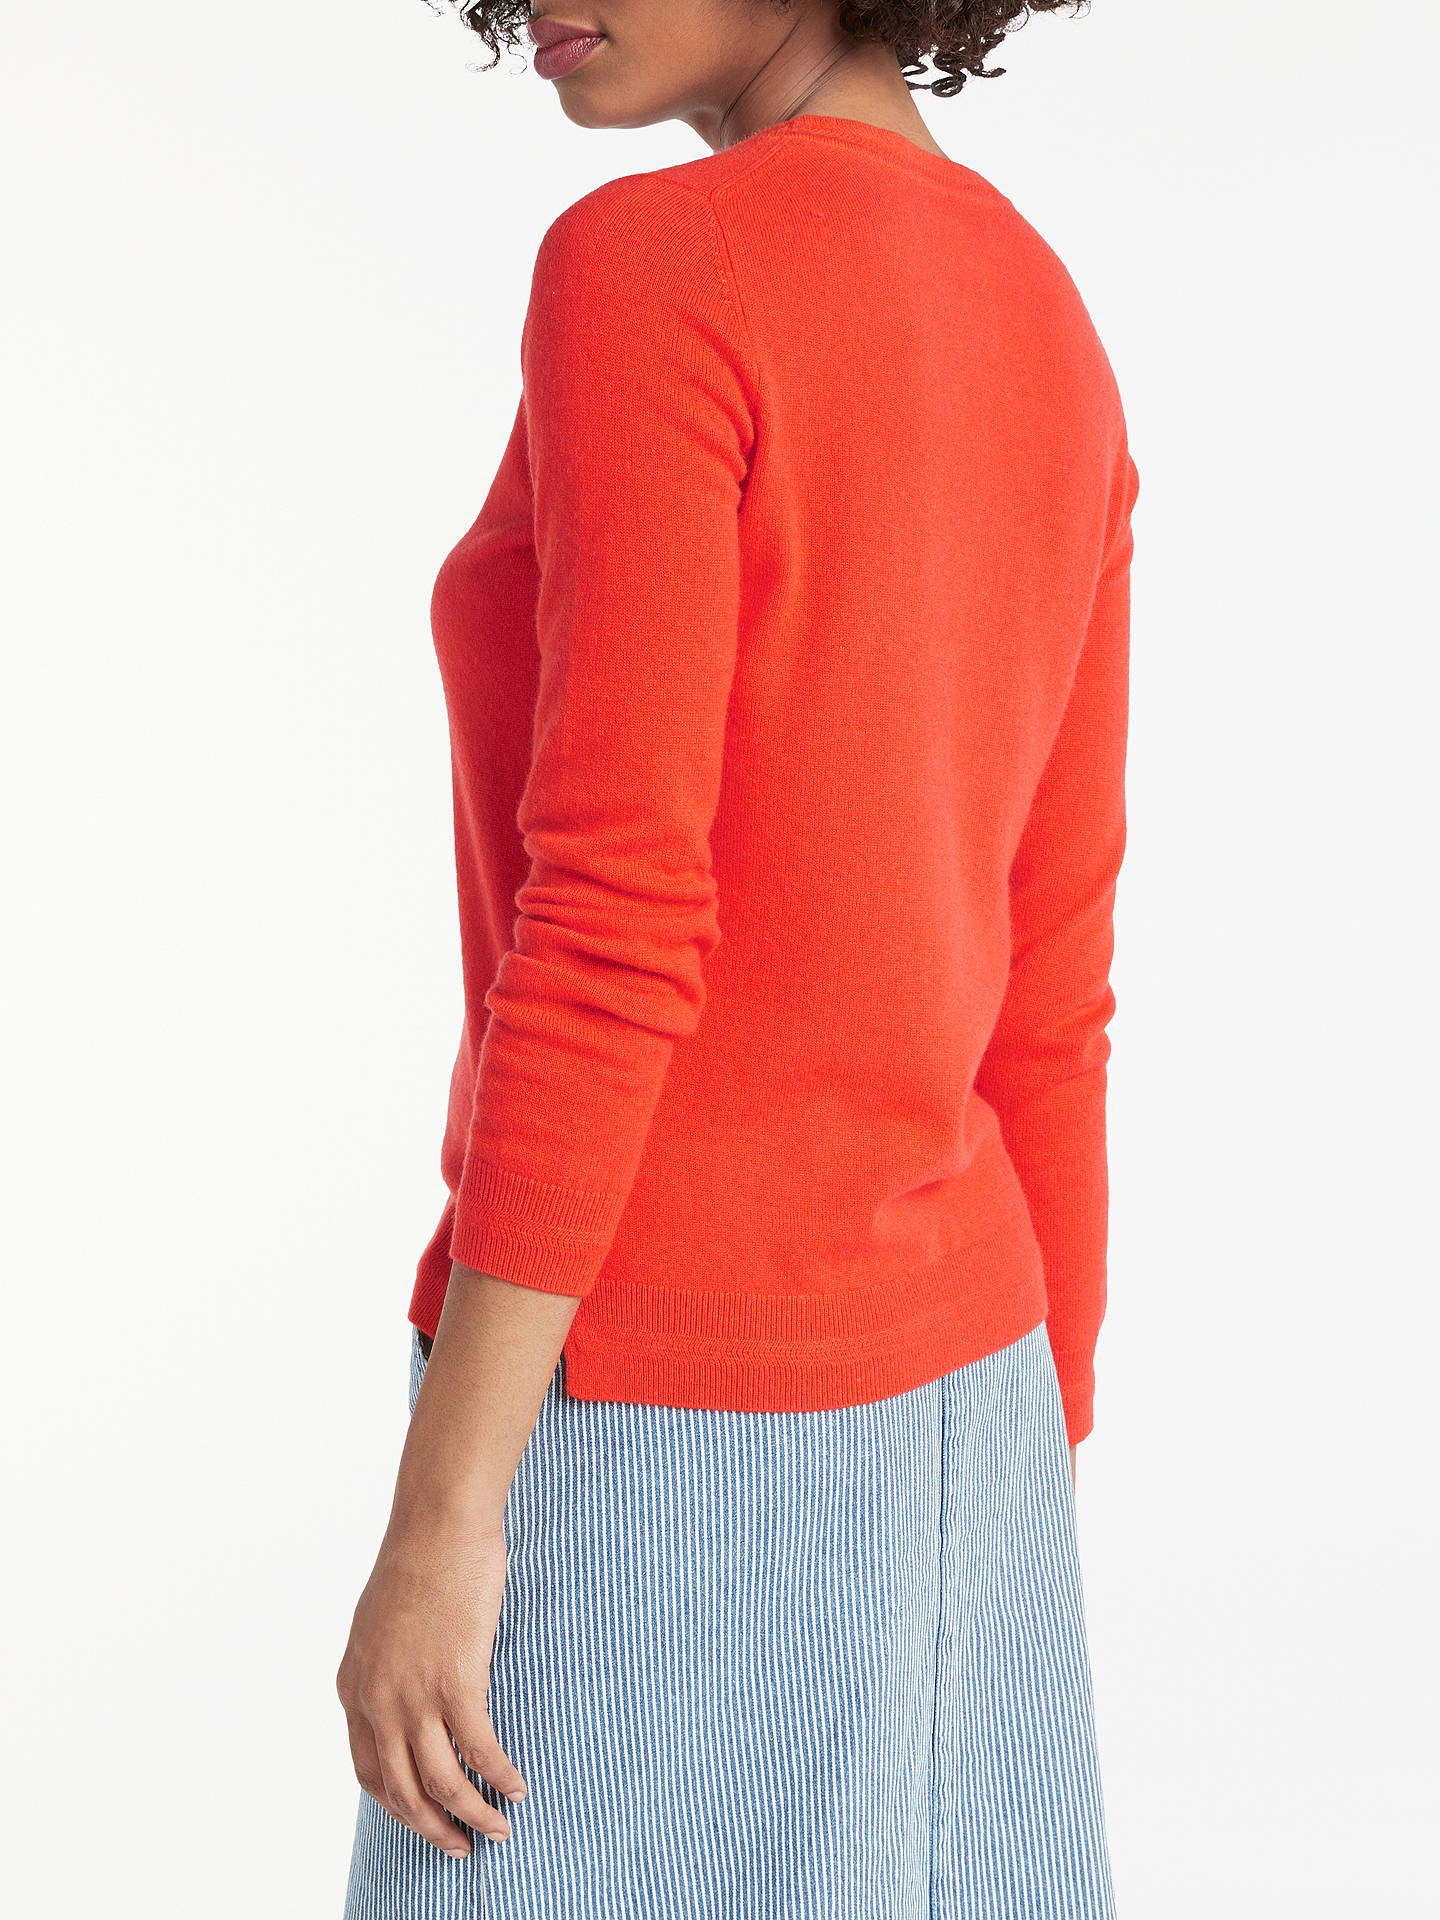 Buy Boden Cashmere Crew Neck Jumper, Red Pop, XS Online at johnlewis.com